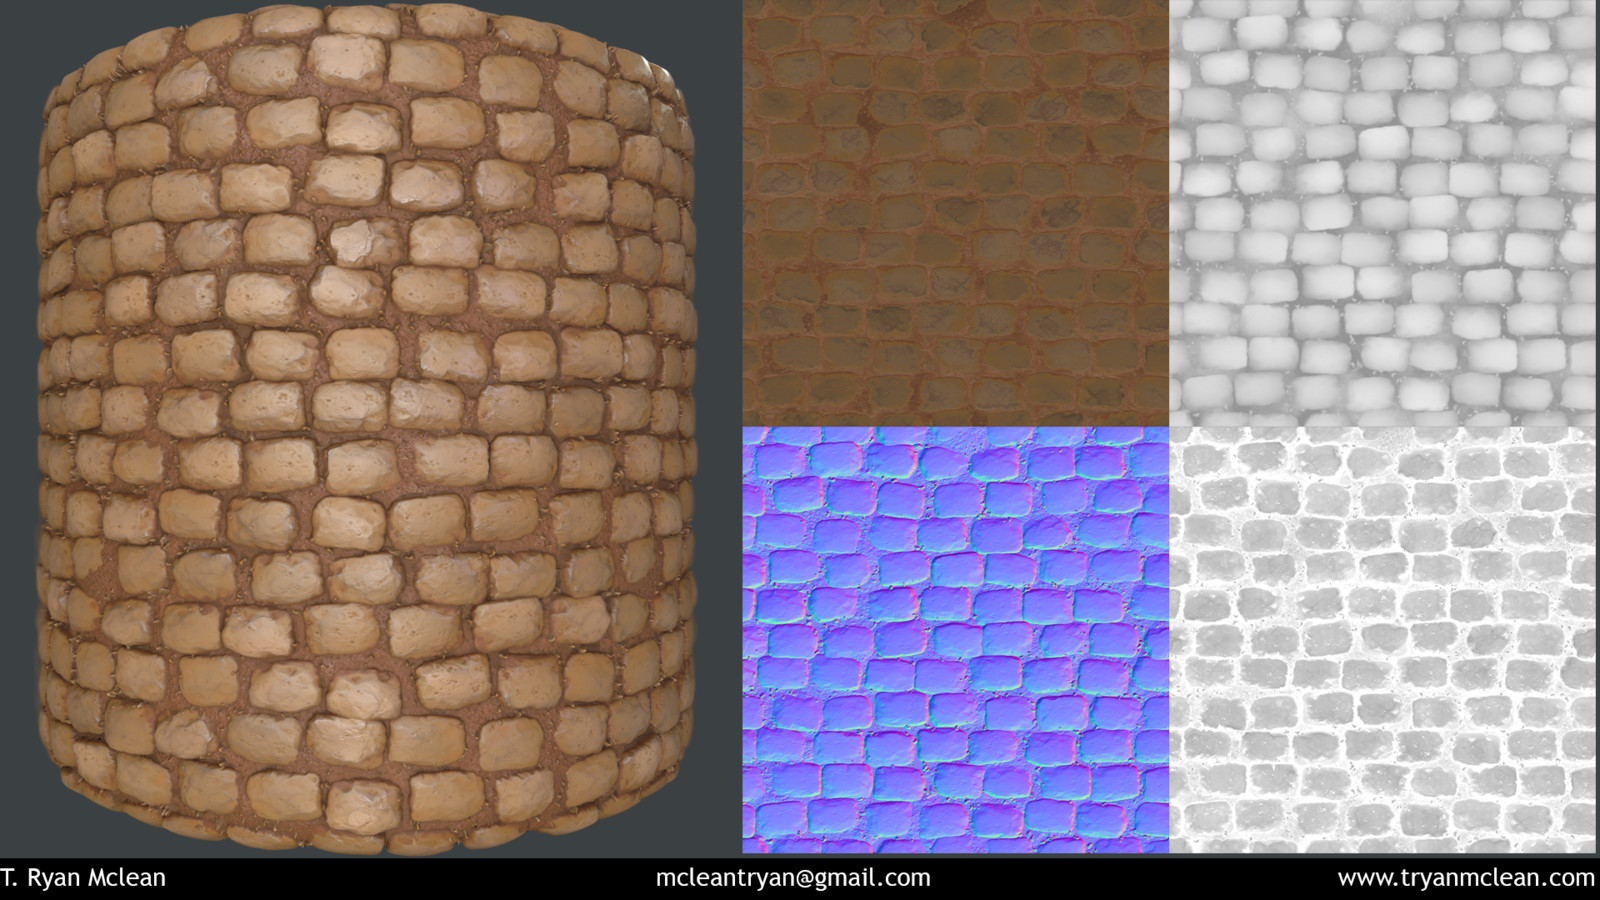 Cobblestone Material created in Substance Designer and rendered in Marmoset Toolbag. Texture flats, albedo, height, normal and roughness.